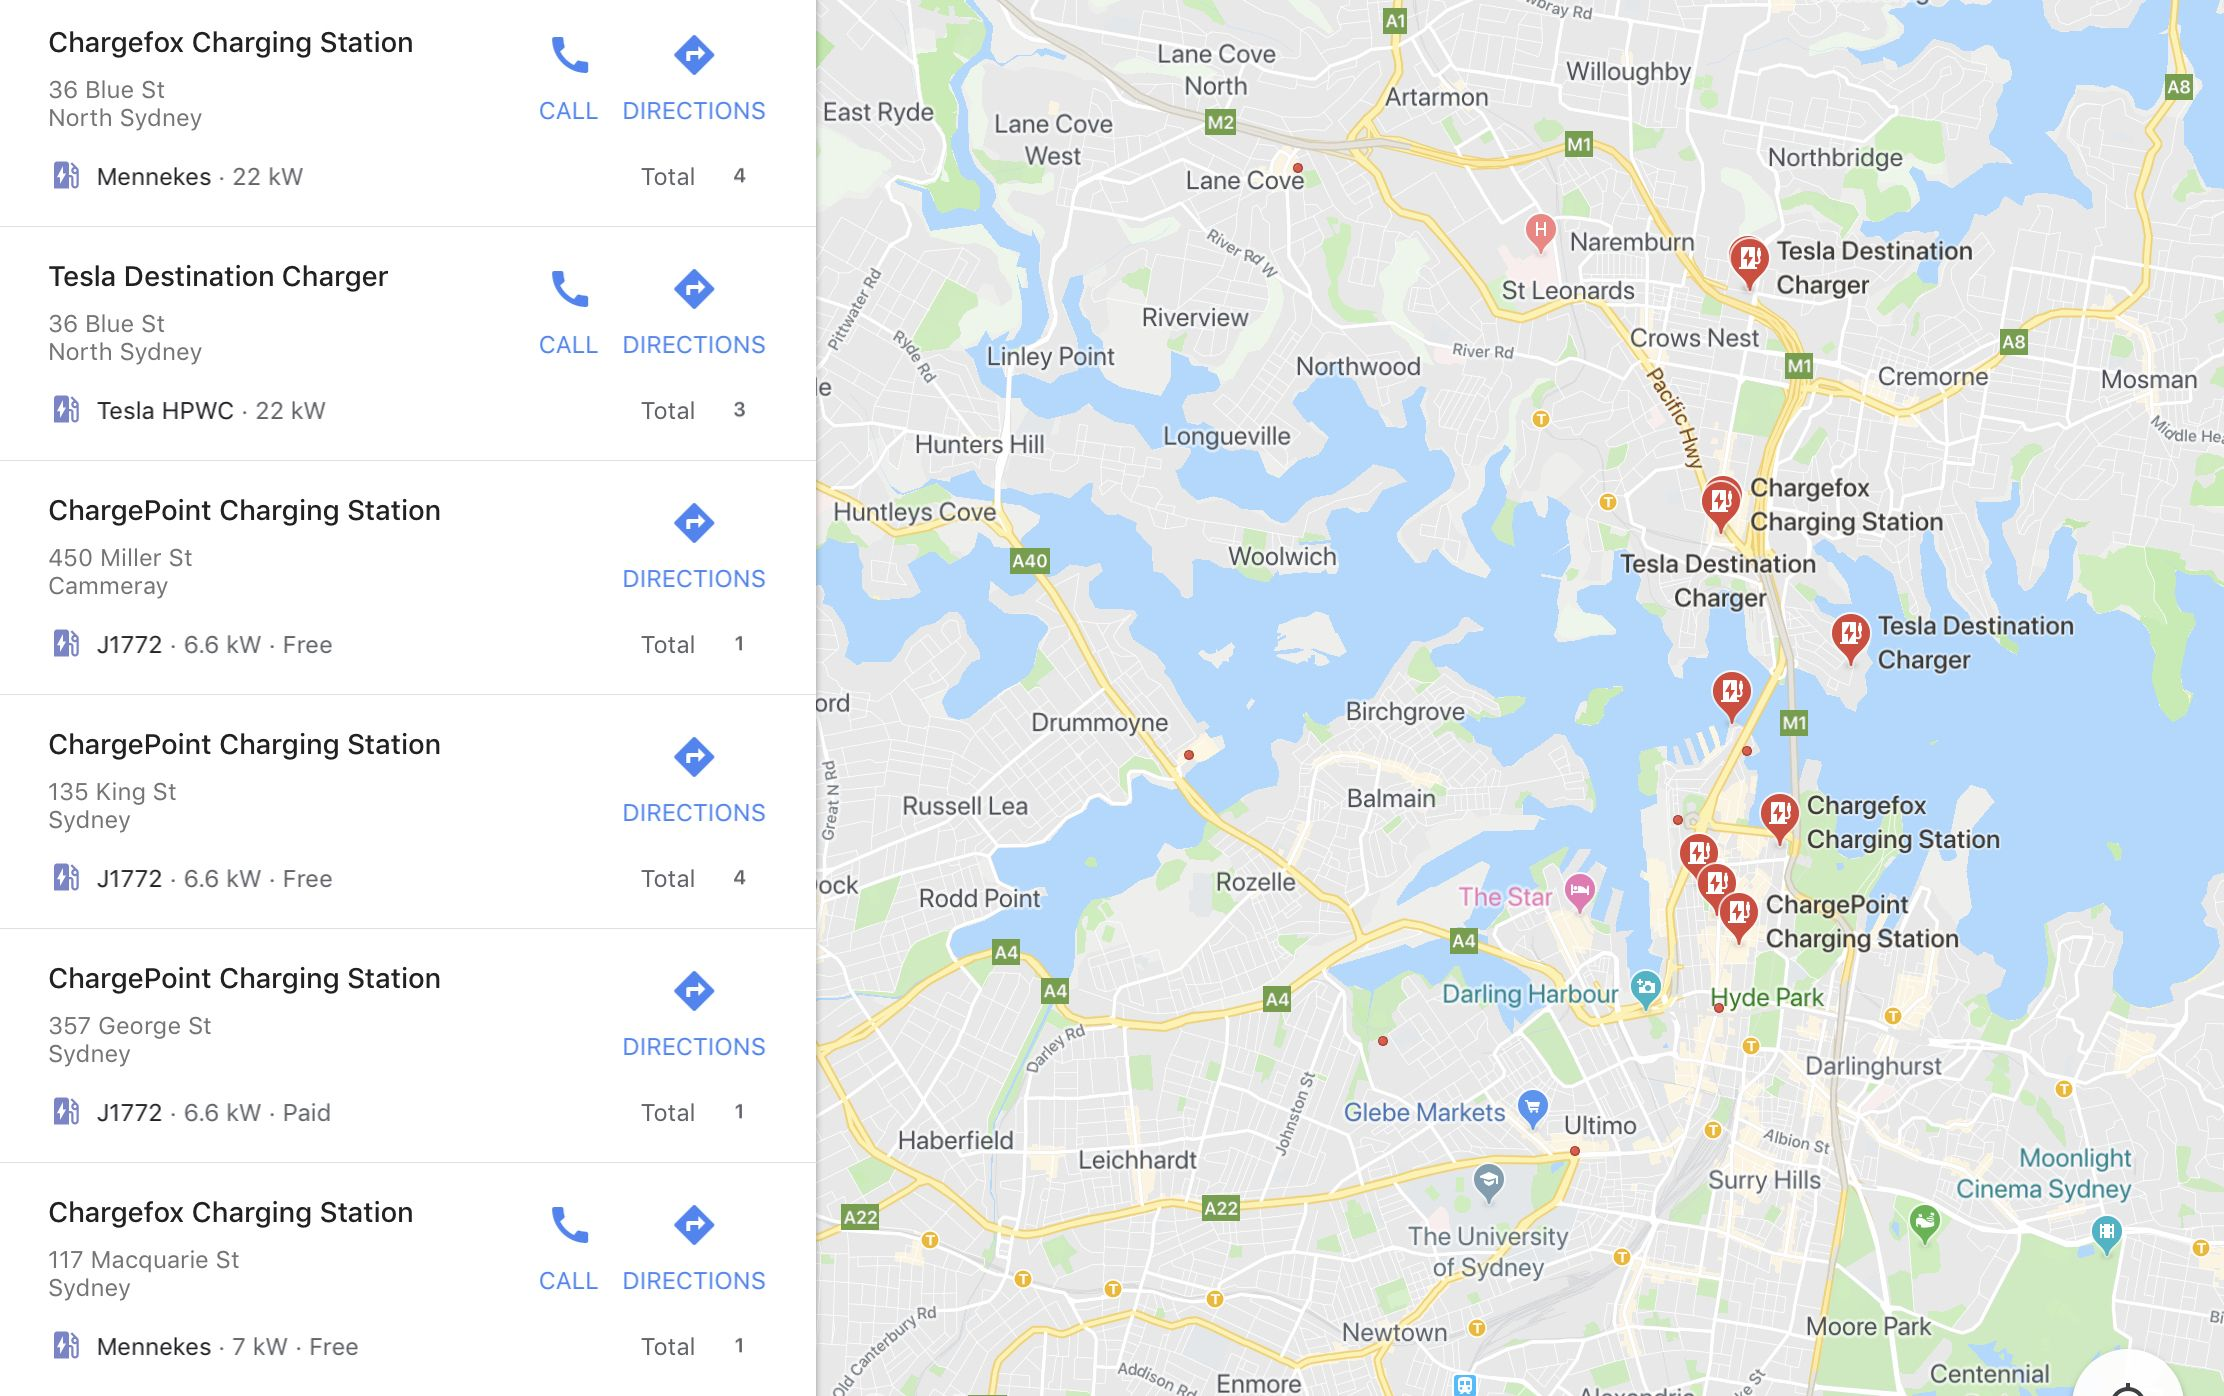 Google Maps adds Aussie EV Charging Stations (With images